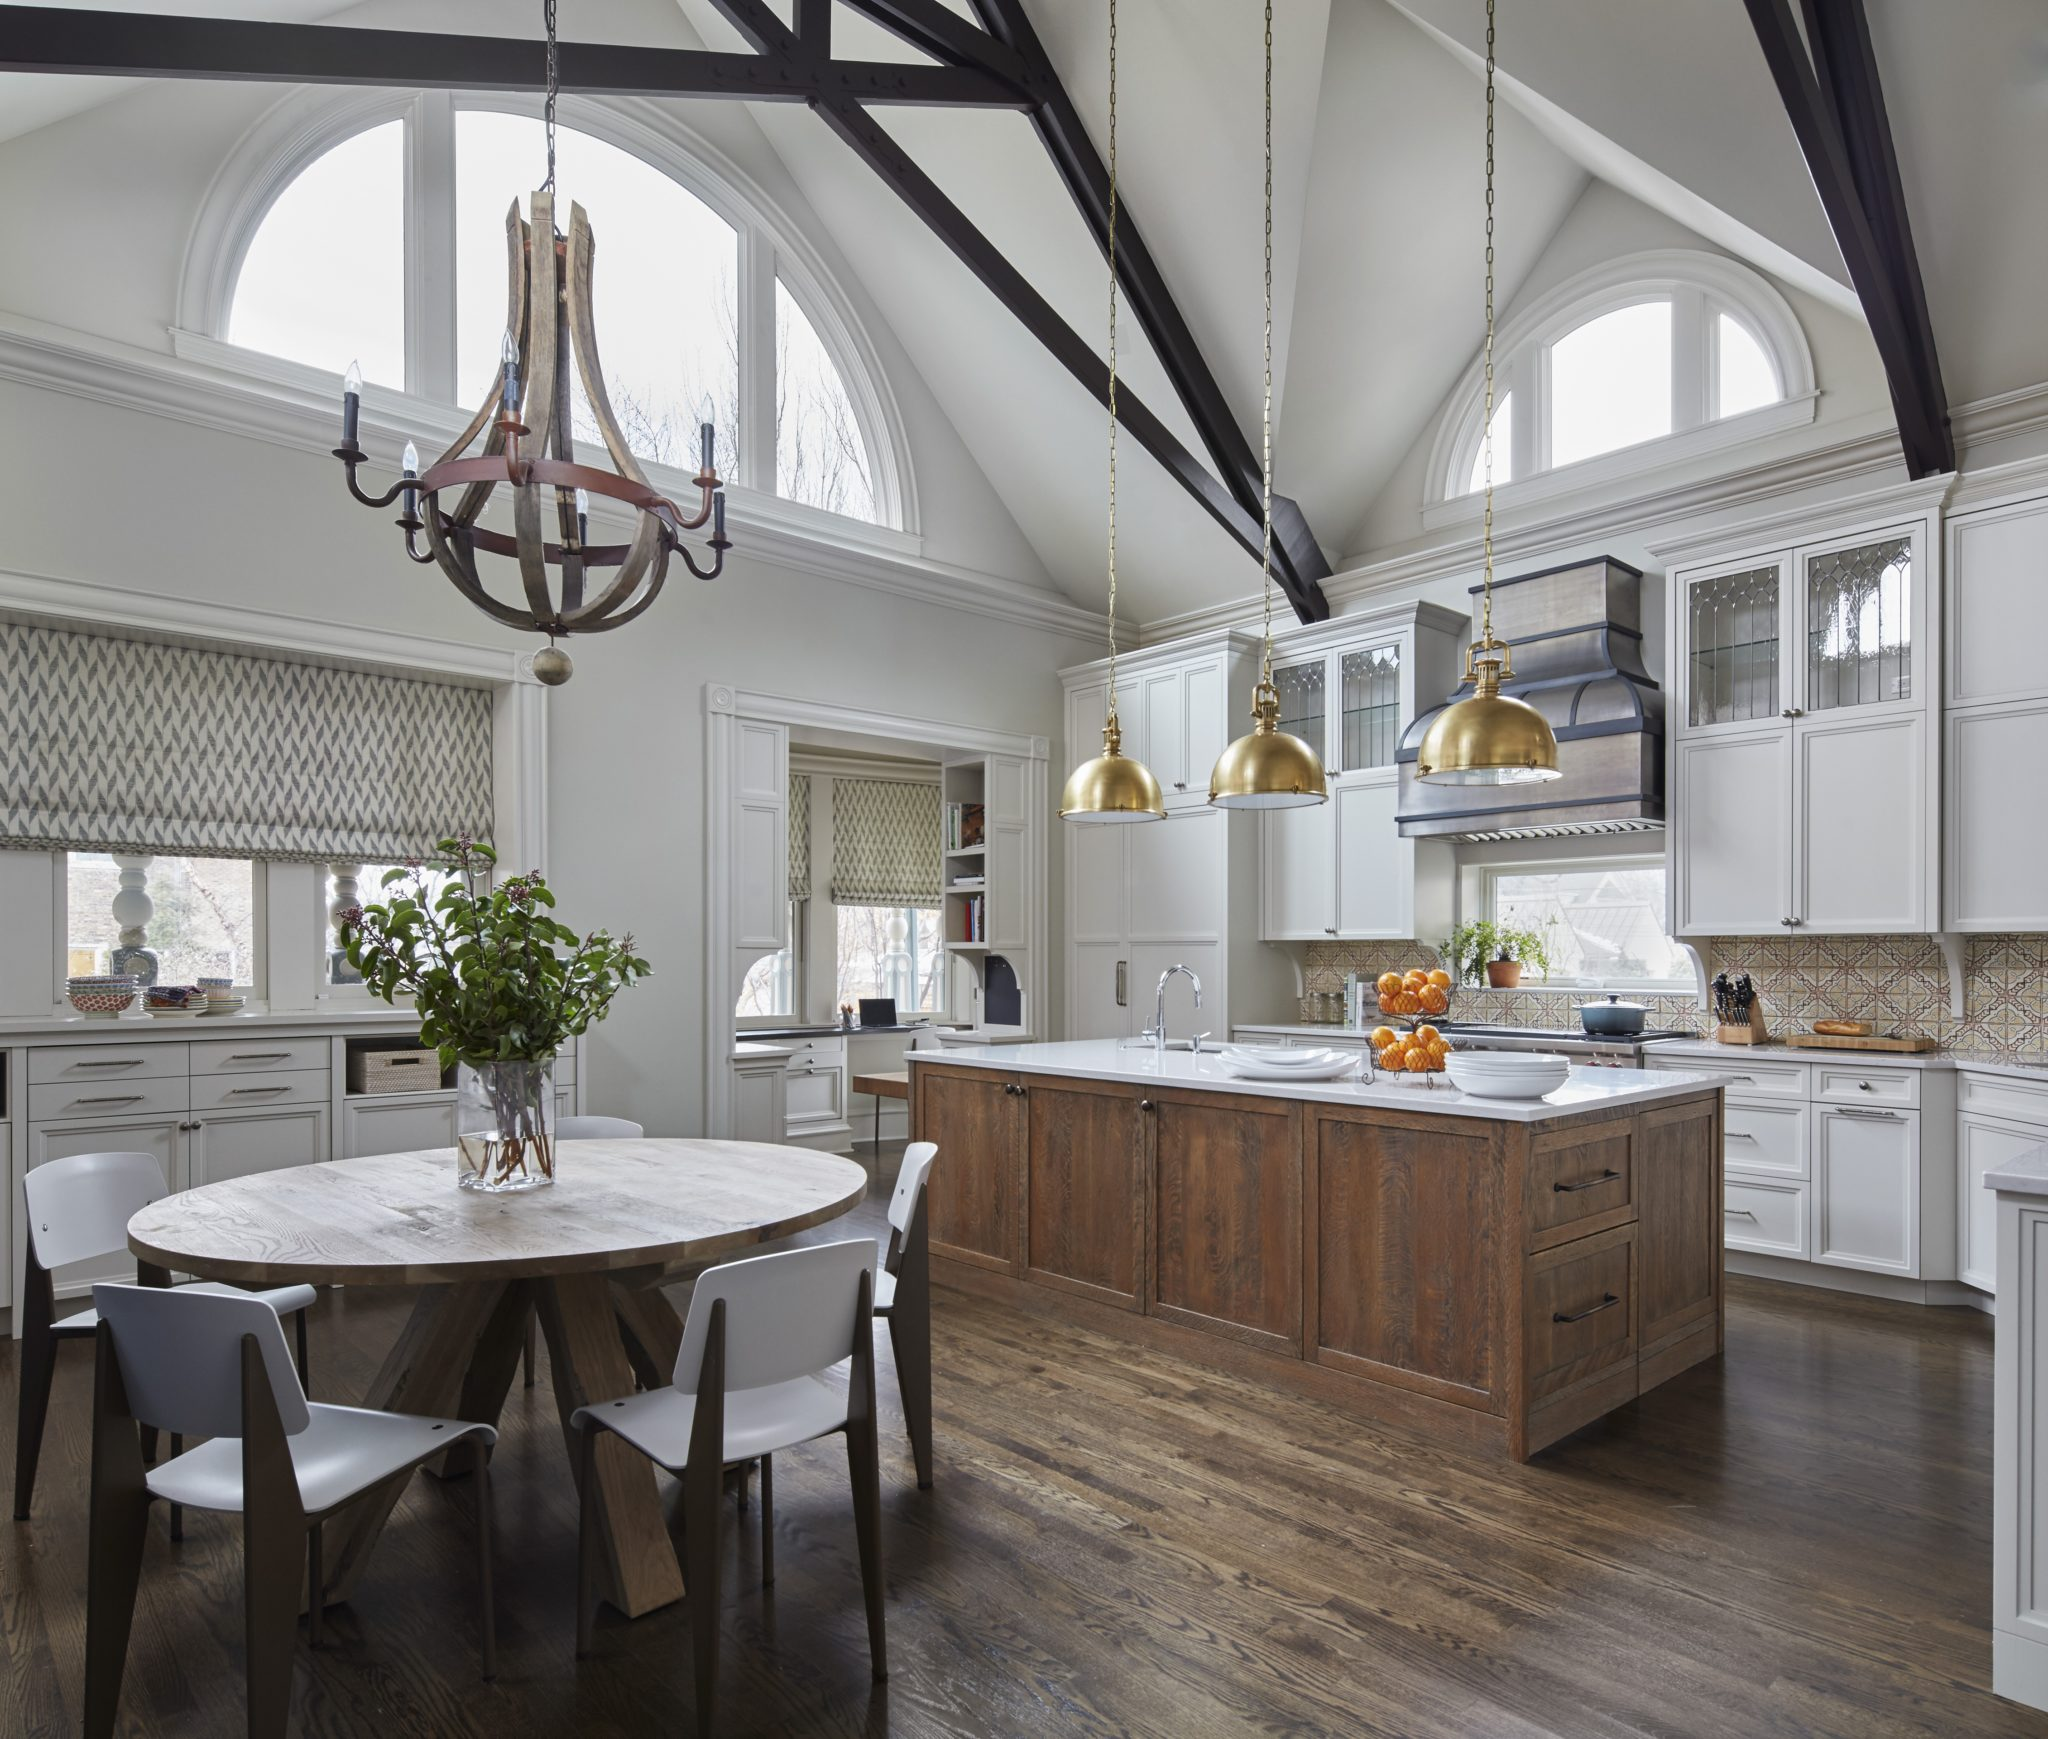 Kitchen with brass pendants and rustic wood island by 2to5 Design